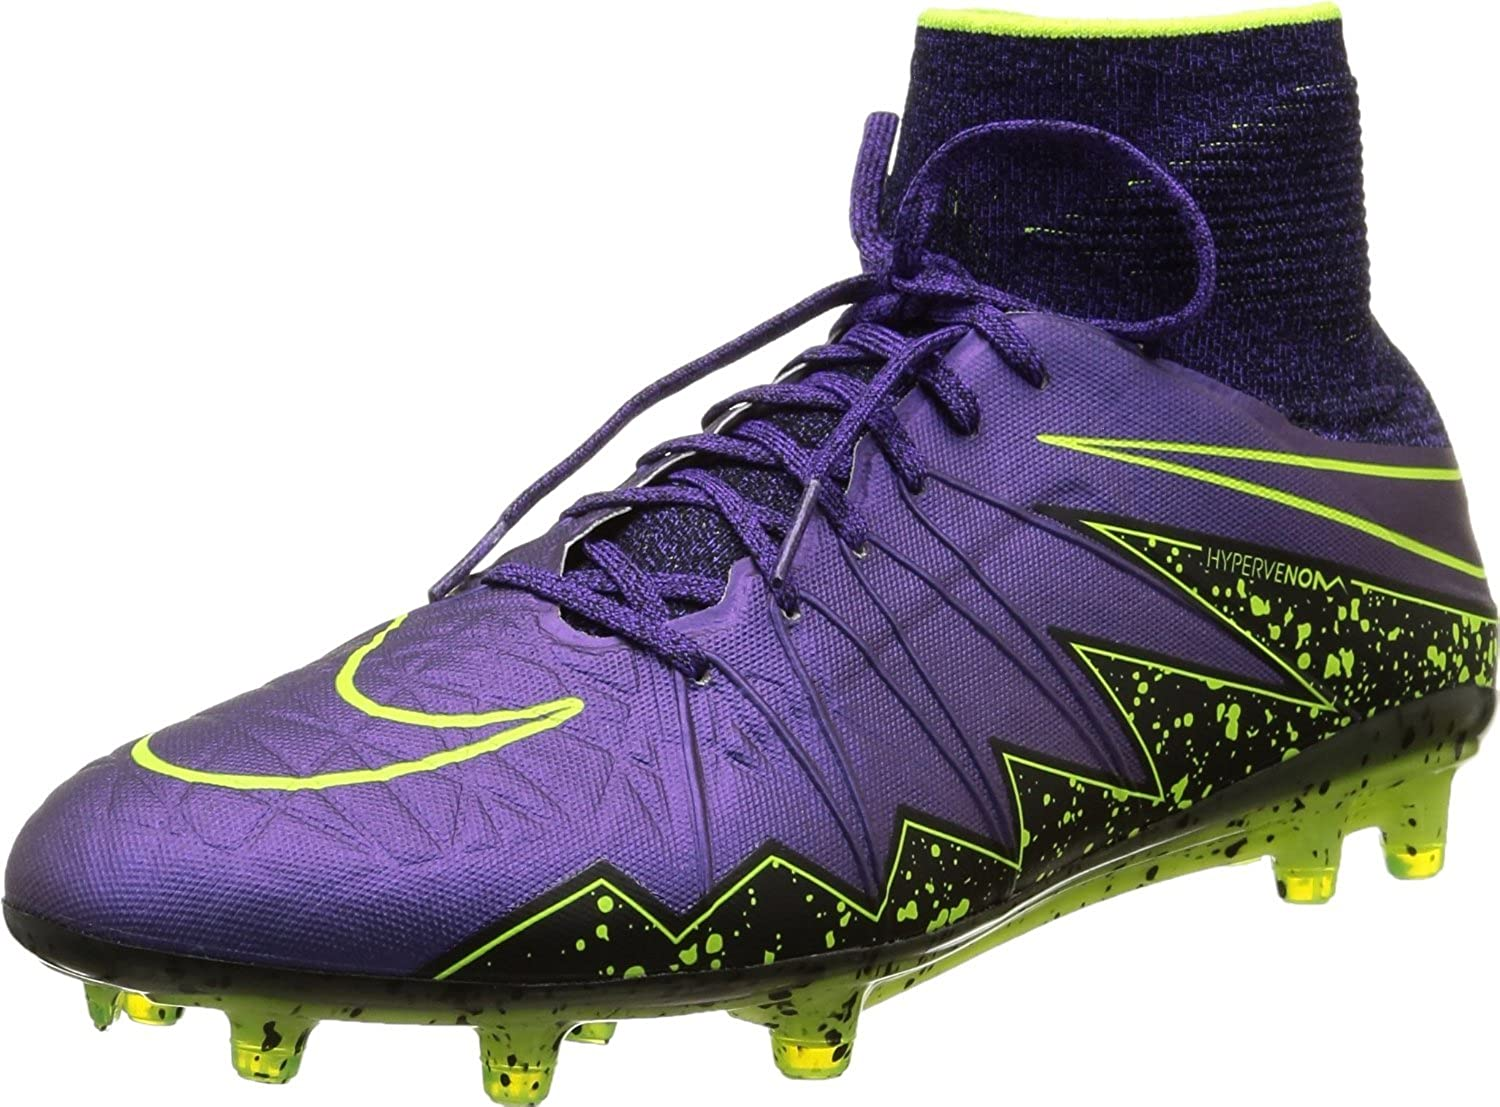 asentamiento gloria Resplandor  Nike Hypervenom Phantom II FG (11) Purple: Amazon.ca: Shoes & Handbags